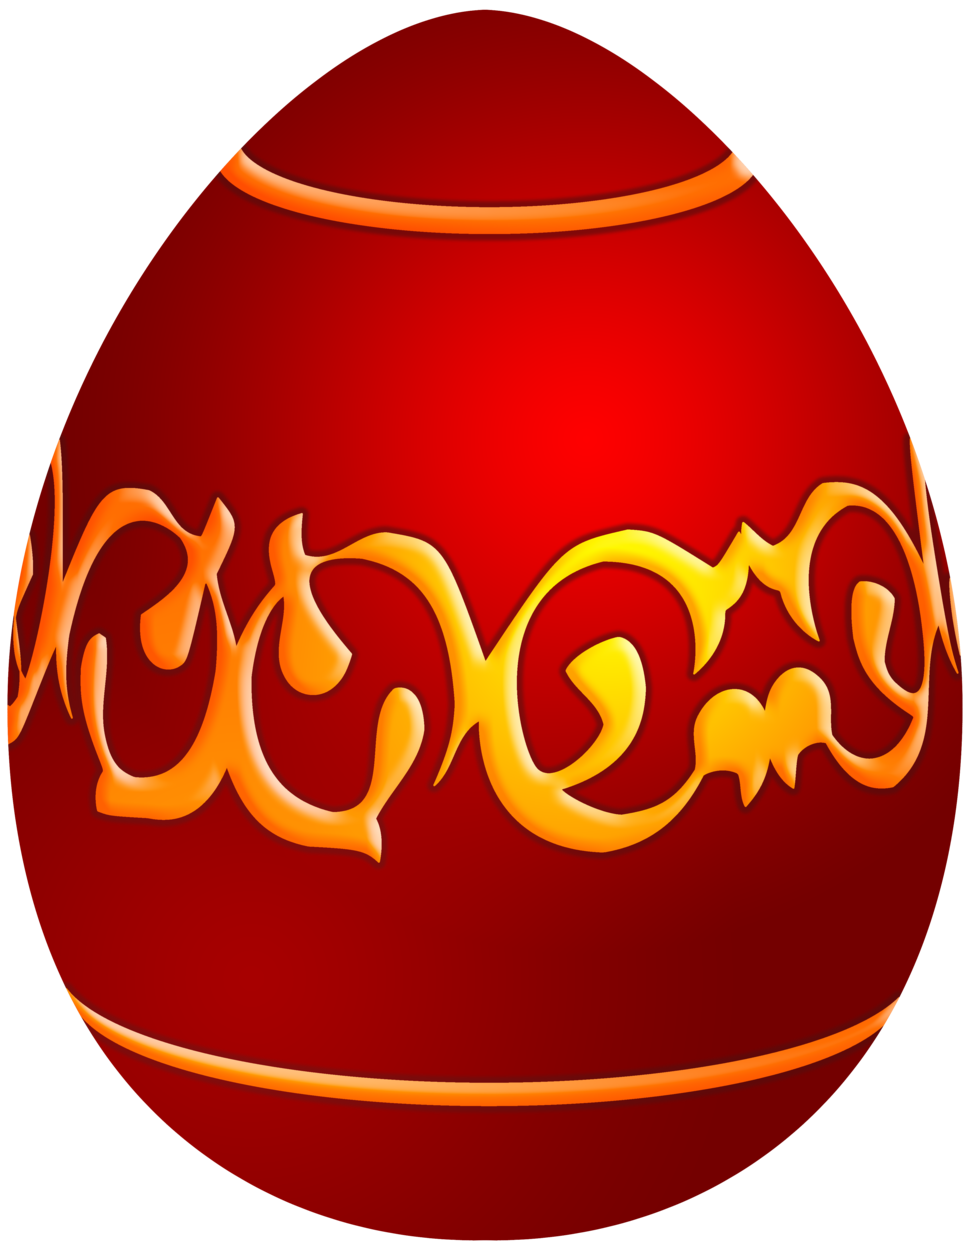 970x1250 Easter Decorative Red Egg Png Clip Art